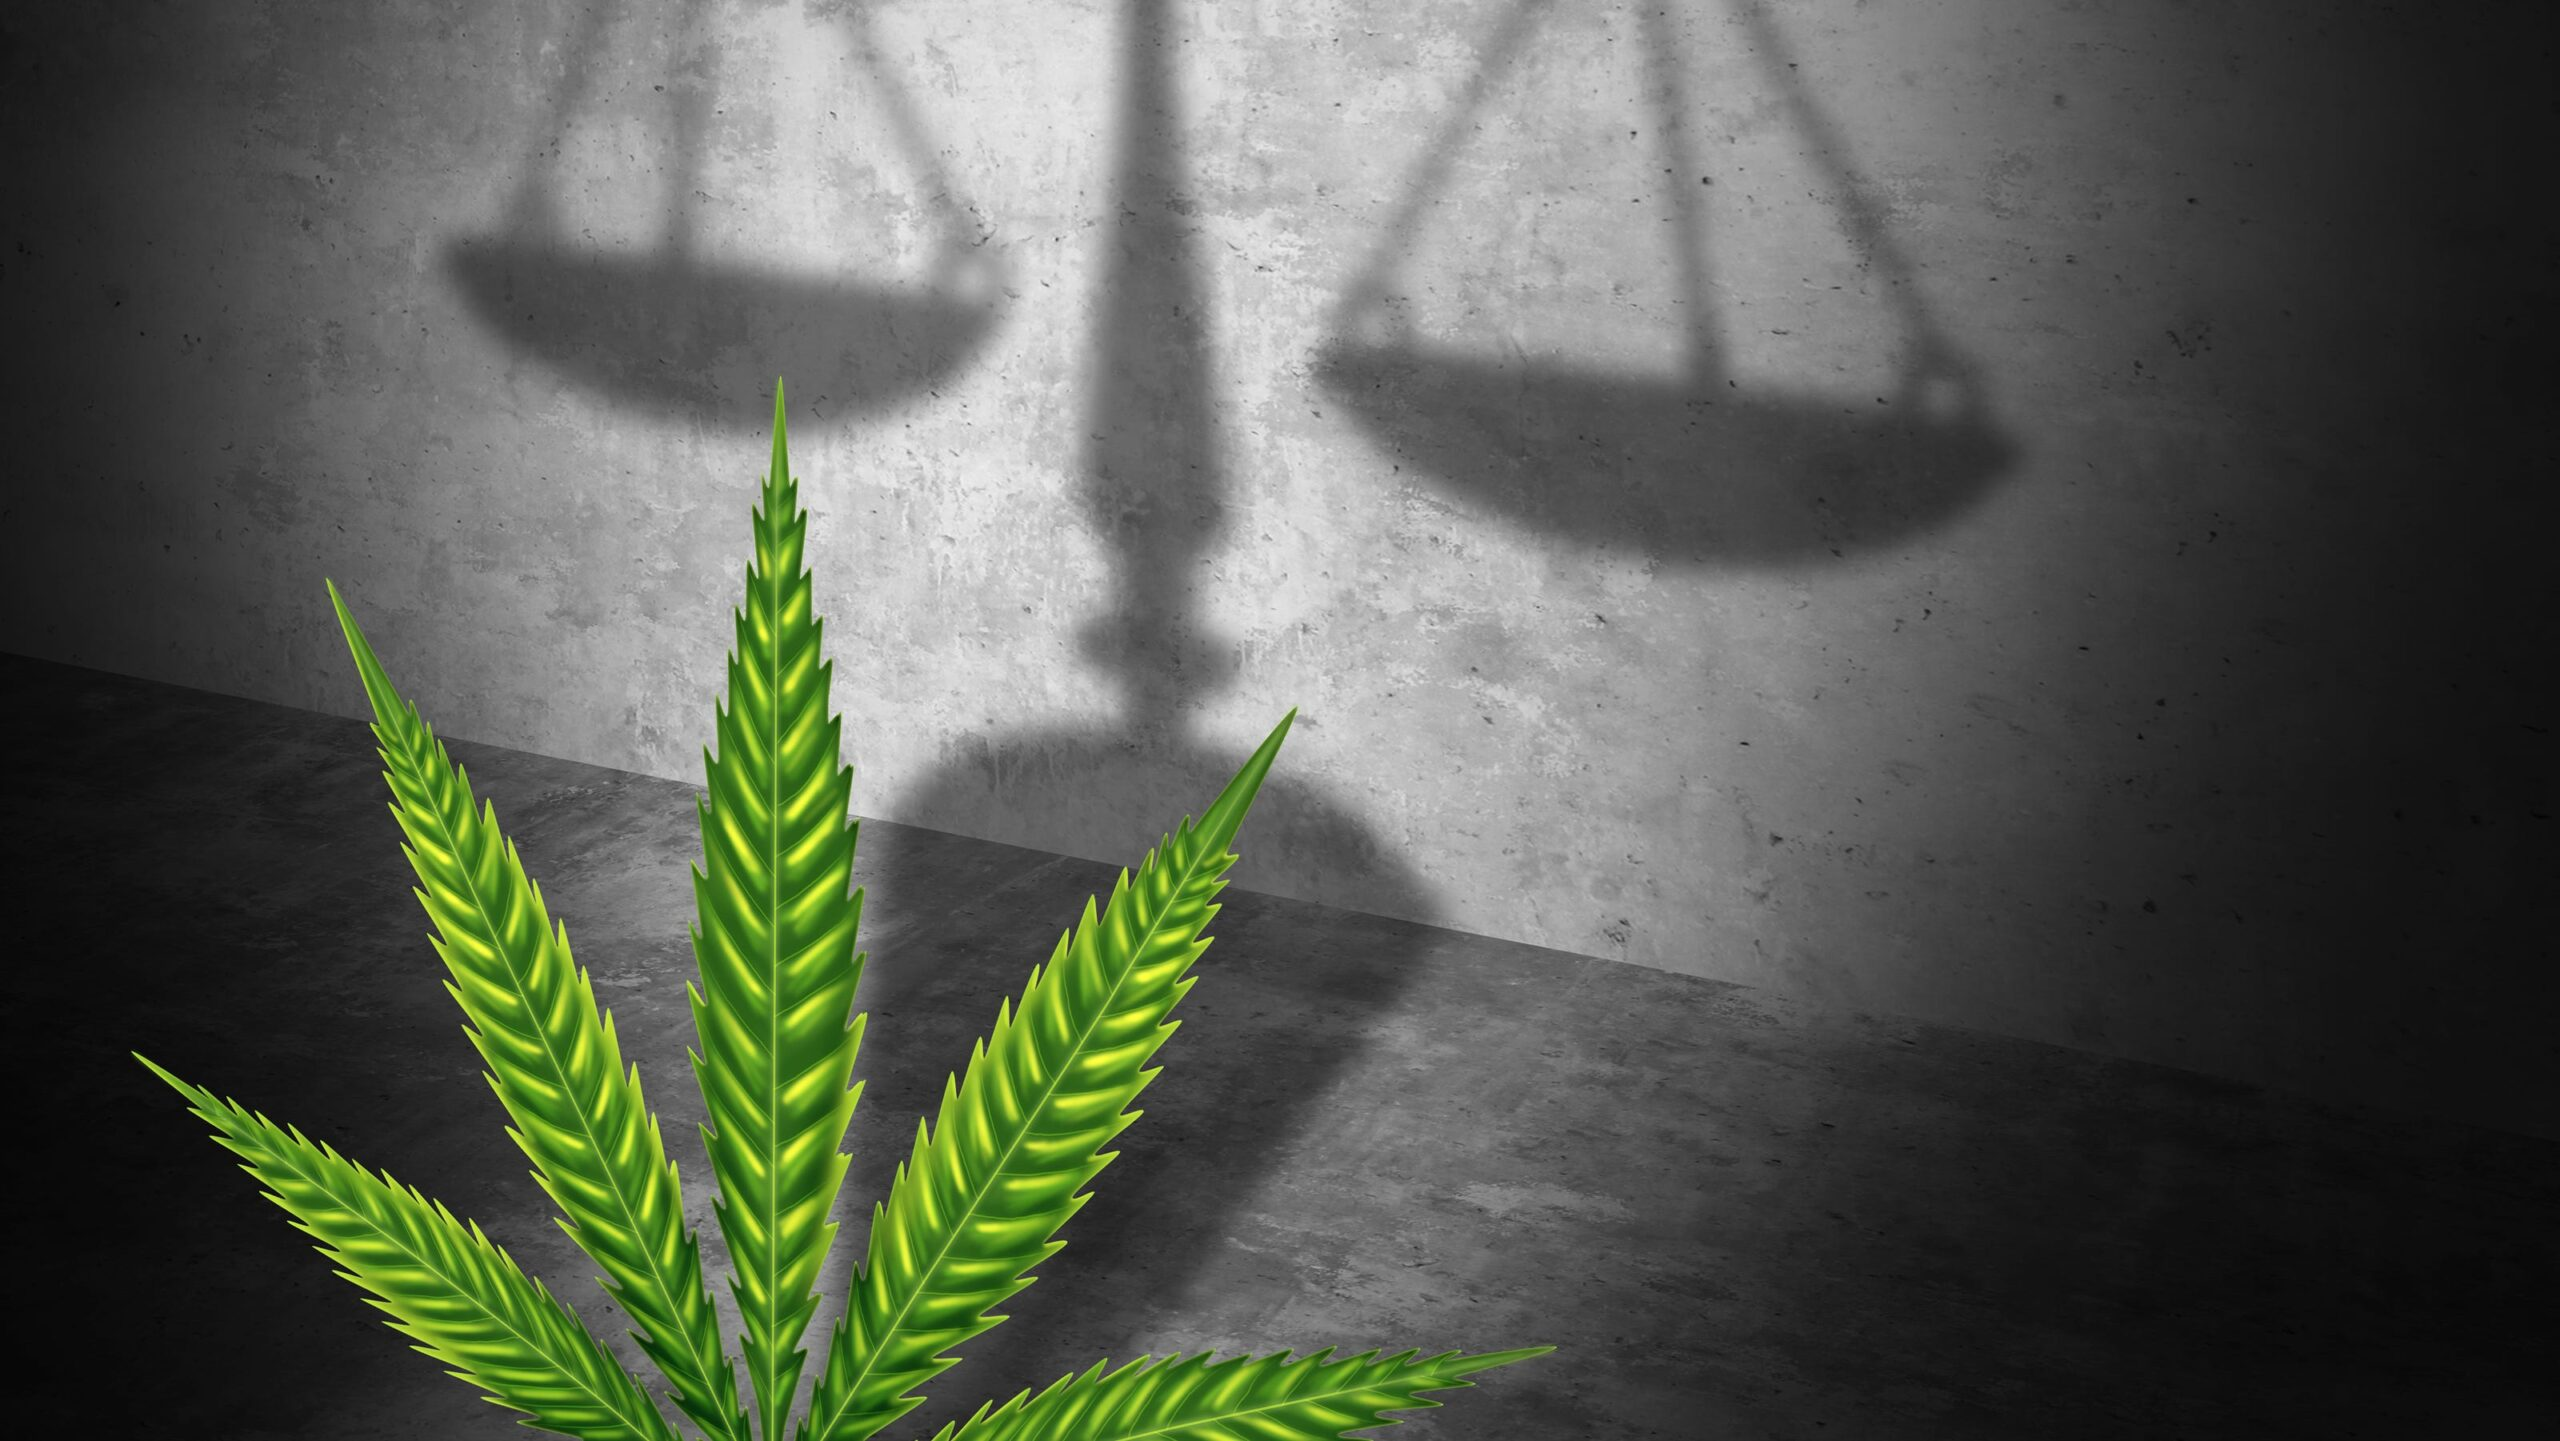 Advocating cannabis reforms has become essential to attain social justice and equality in the United States.